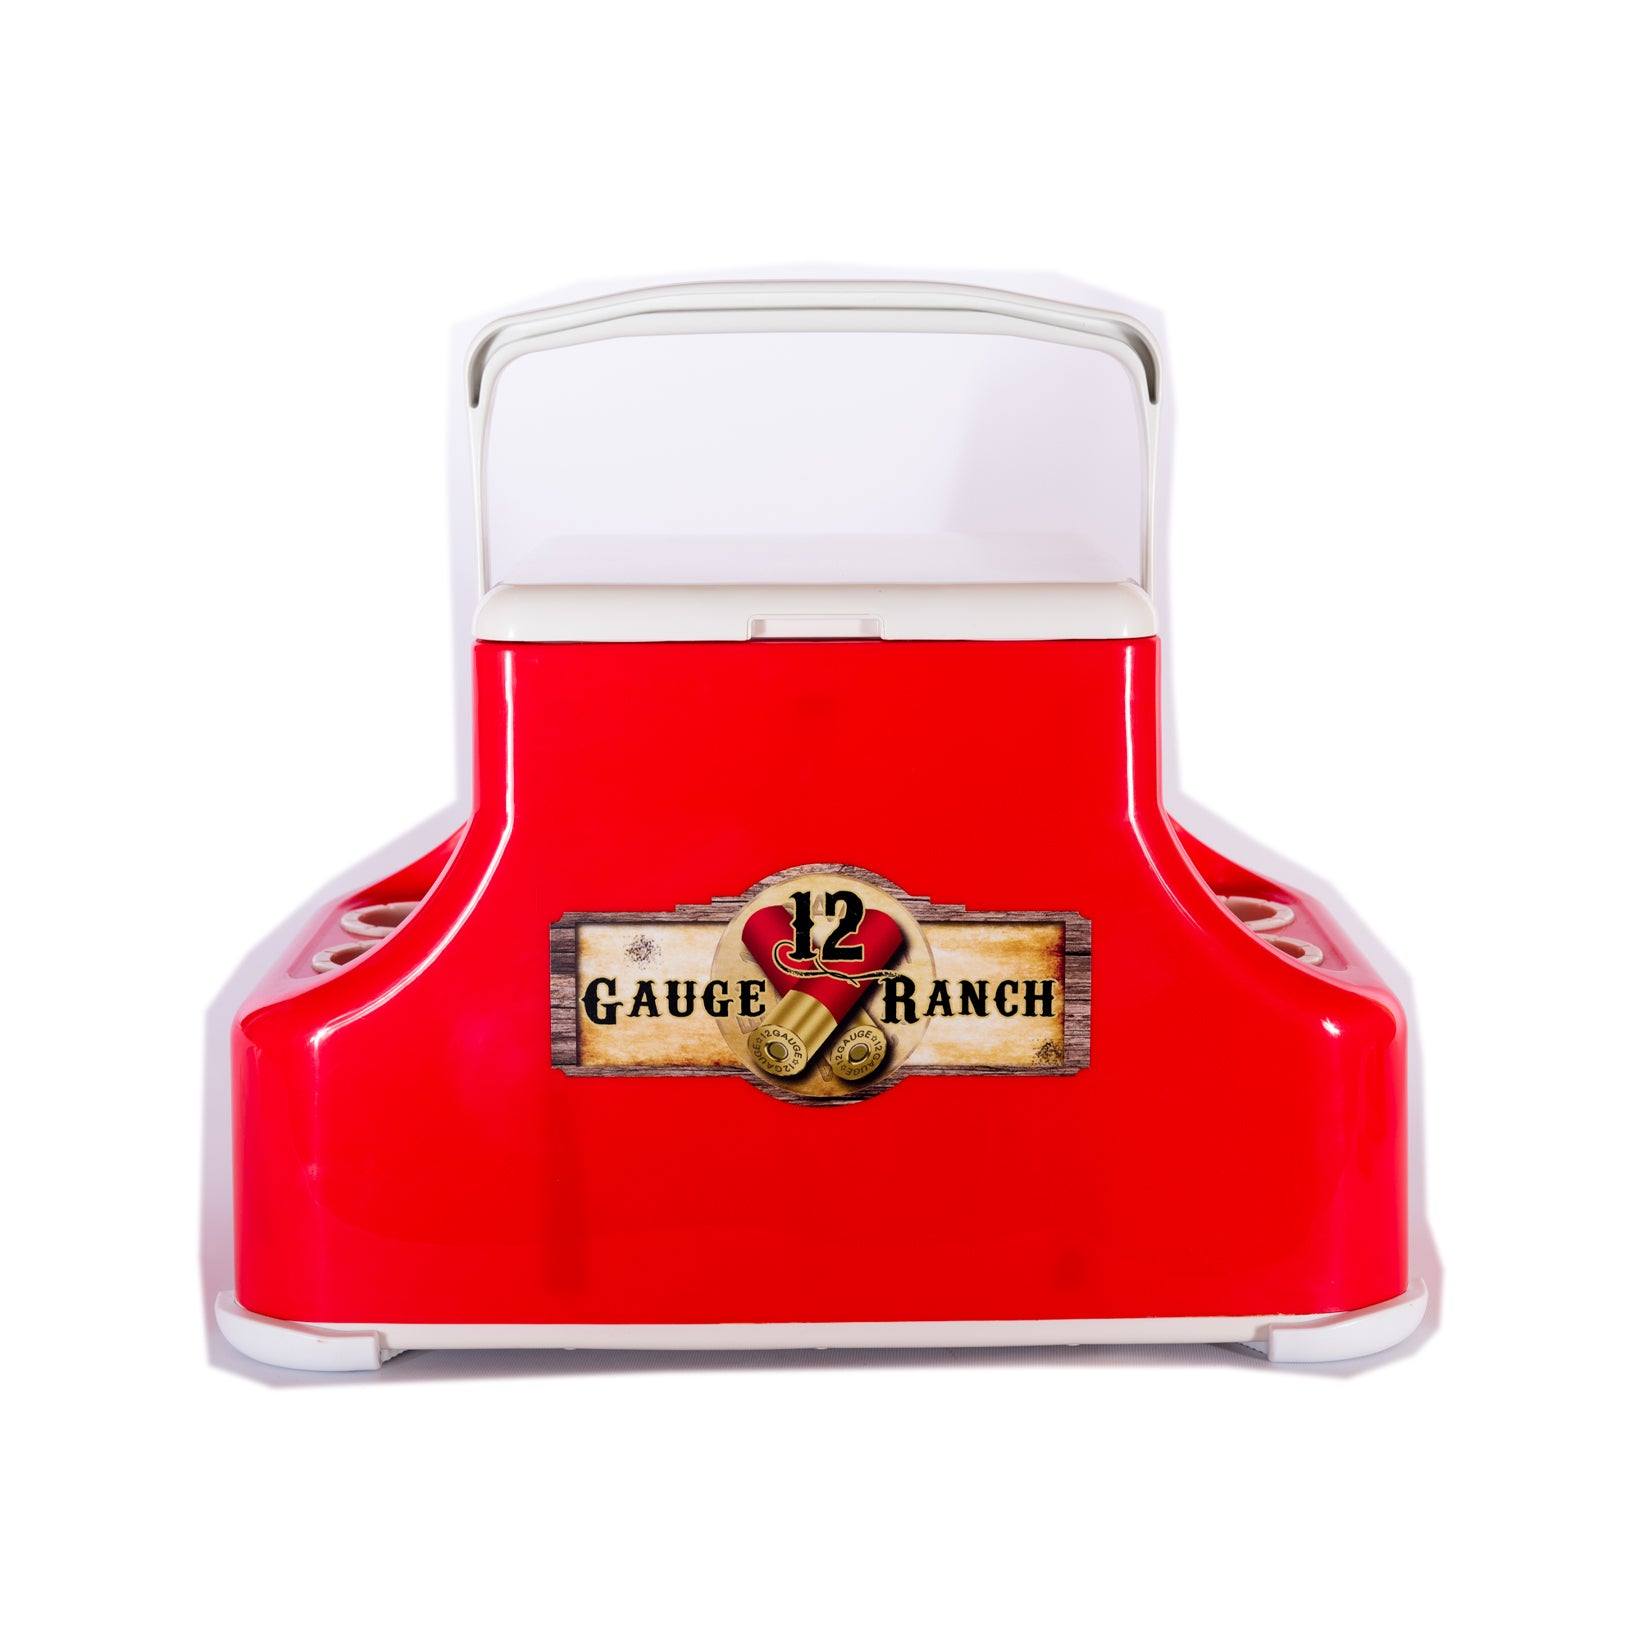 12 Gauge Ranch Red Arcticor Cooler (RDCLRTR), Accessories, 12 Gauge Ranch, 12 Gauge Ranch 12 Gauge Ranch